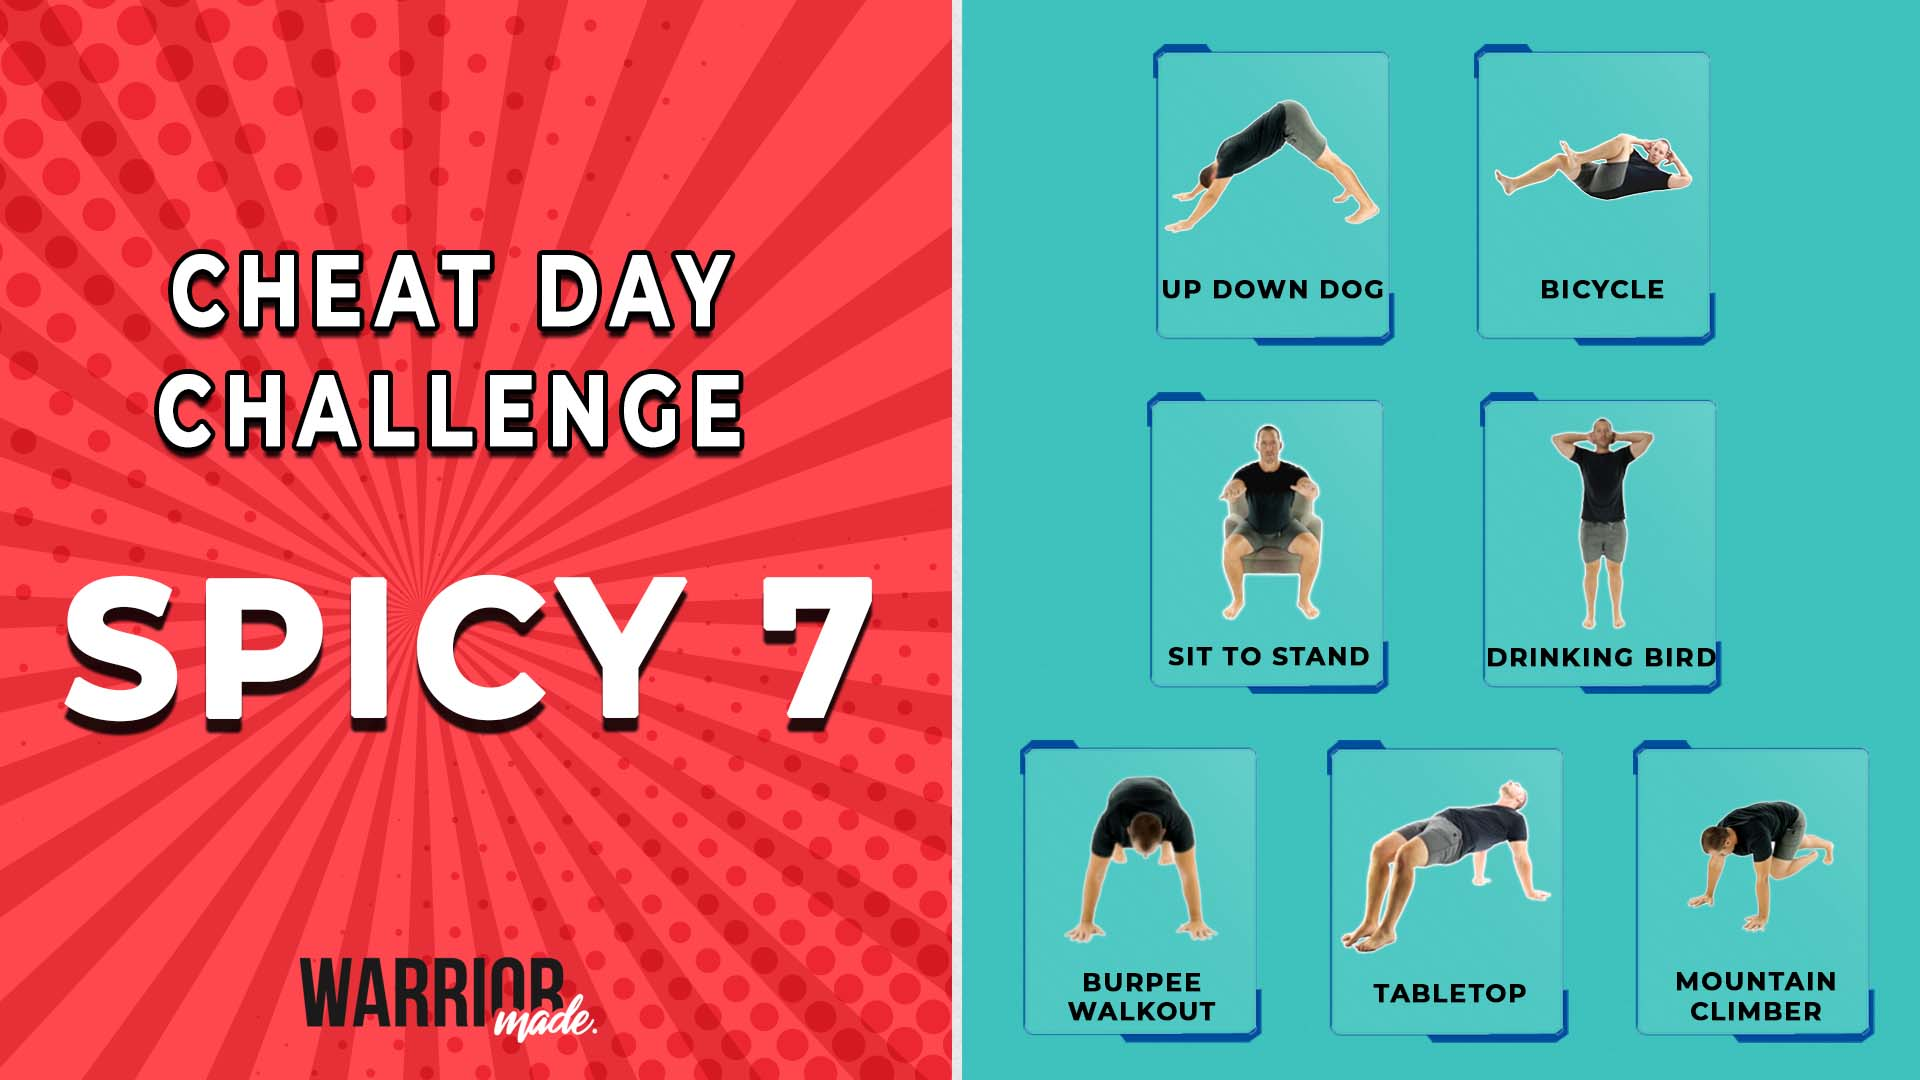 cheat-day-challenge-spicy-7